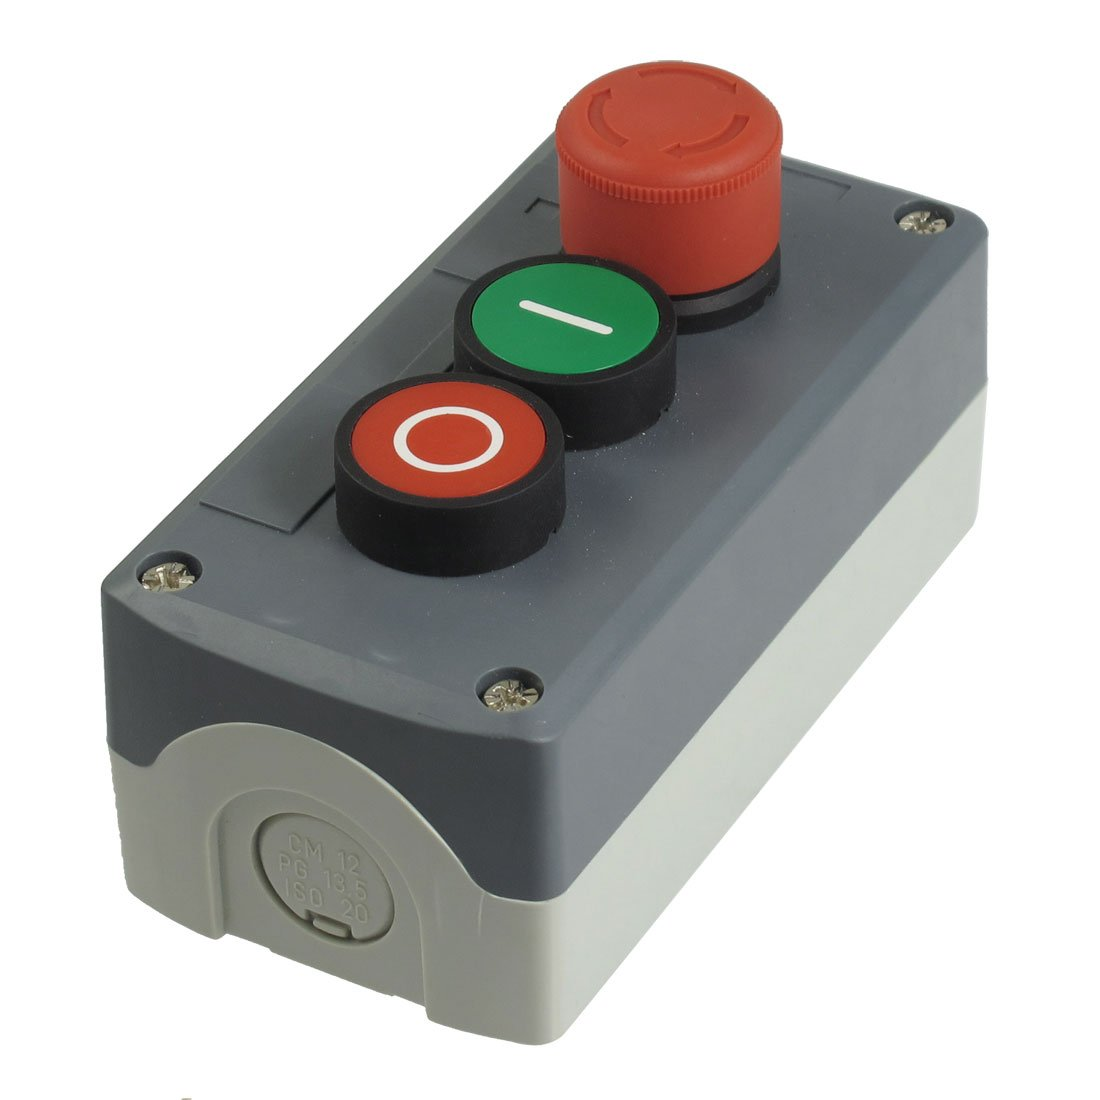 sourcingmap 240V 3A SPST NC Emergency Stop Momentary Green Red Flat Push Button Station Box US-SA-AJD-27136